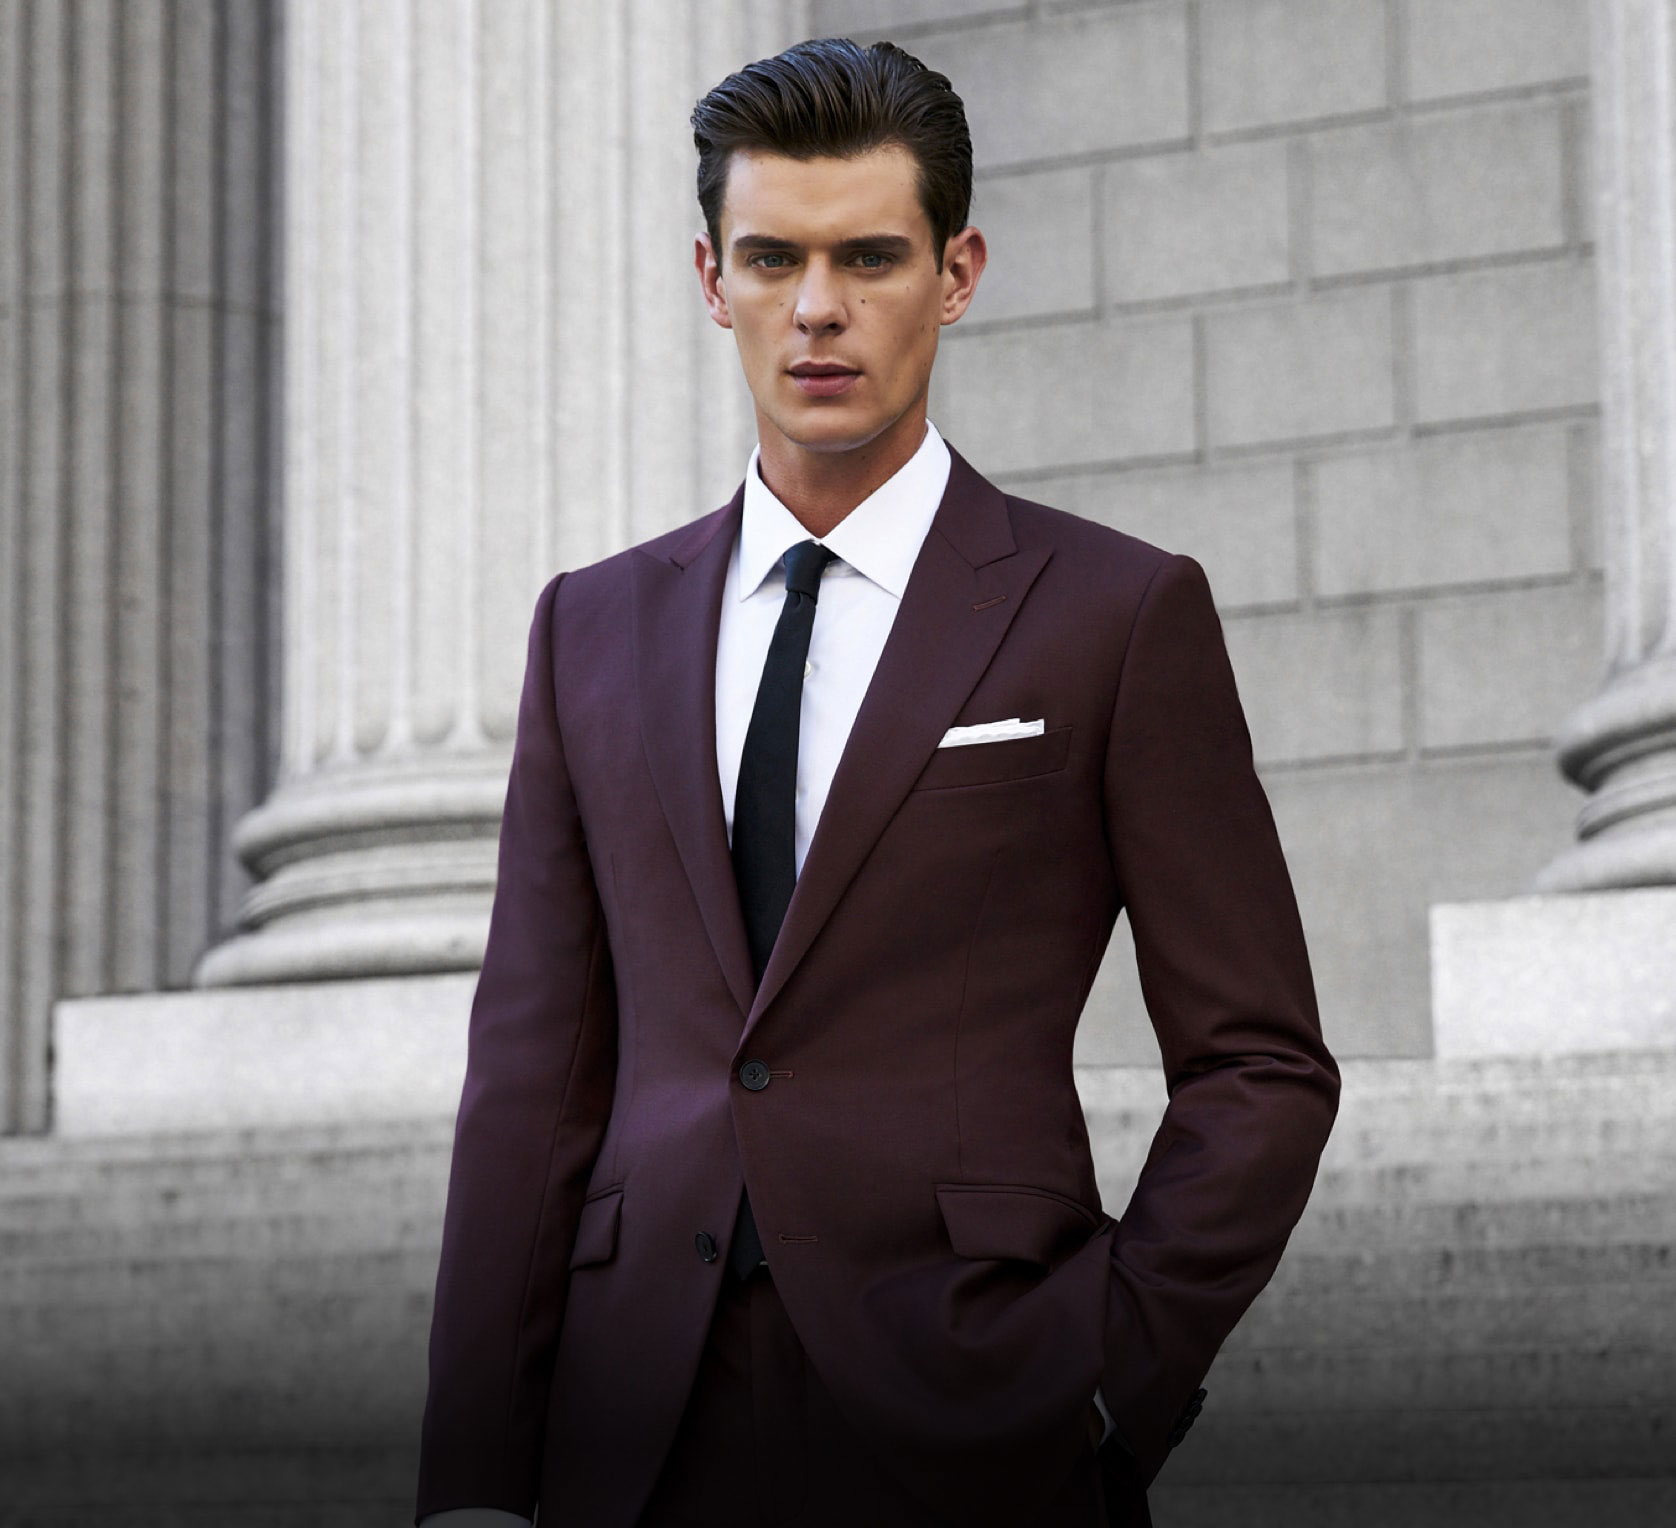 Black Lapel - Best Online Custom Suits and Shirts